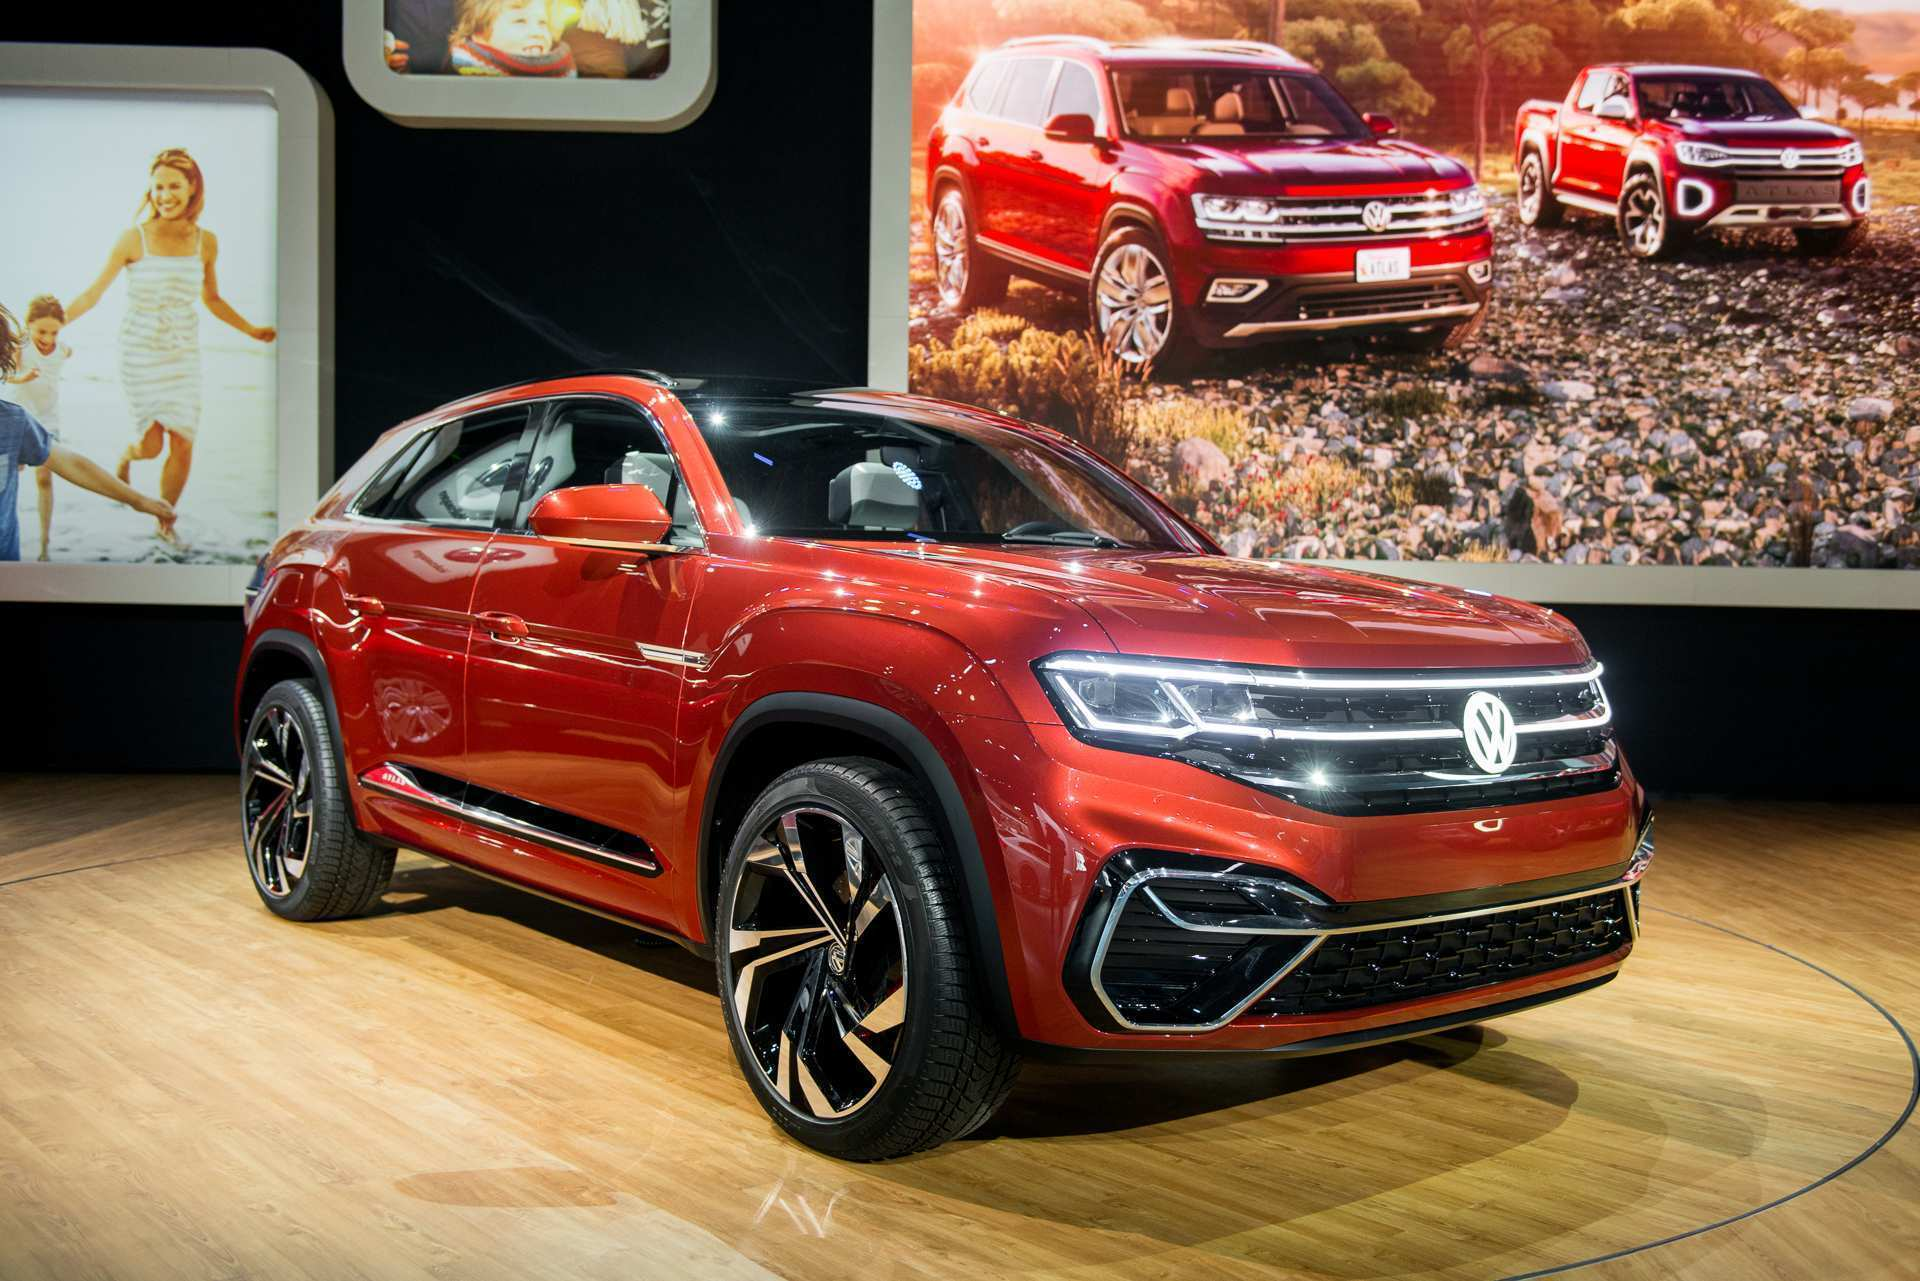 77 All New Volkswagen Atlas 2020 Pricing with Volkswagen Atlas 2020